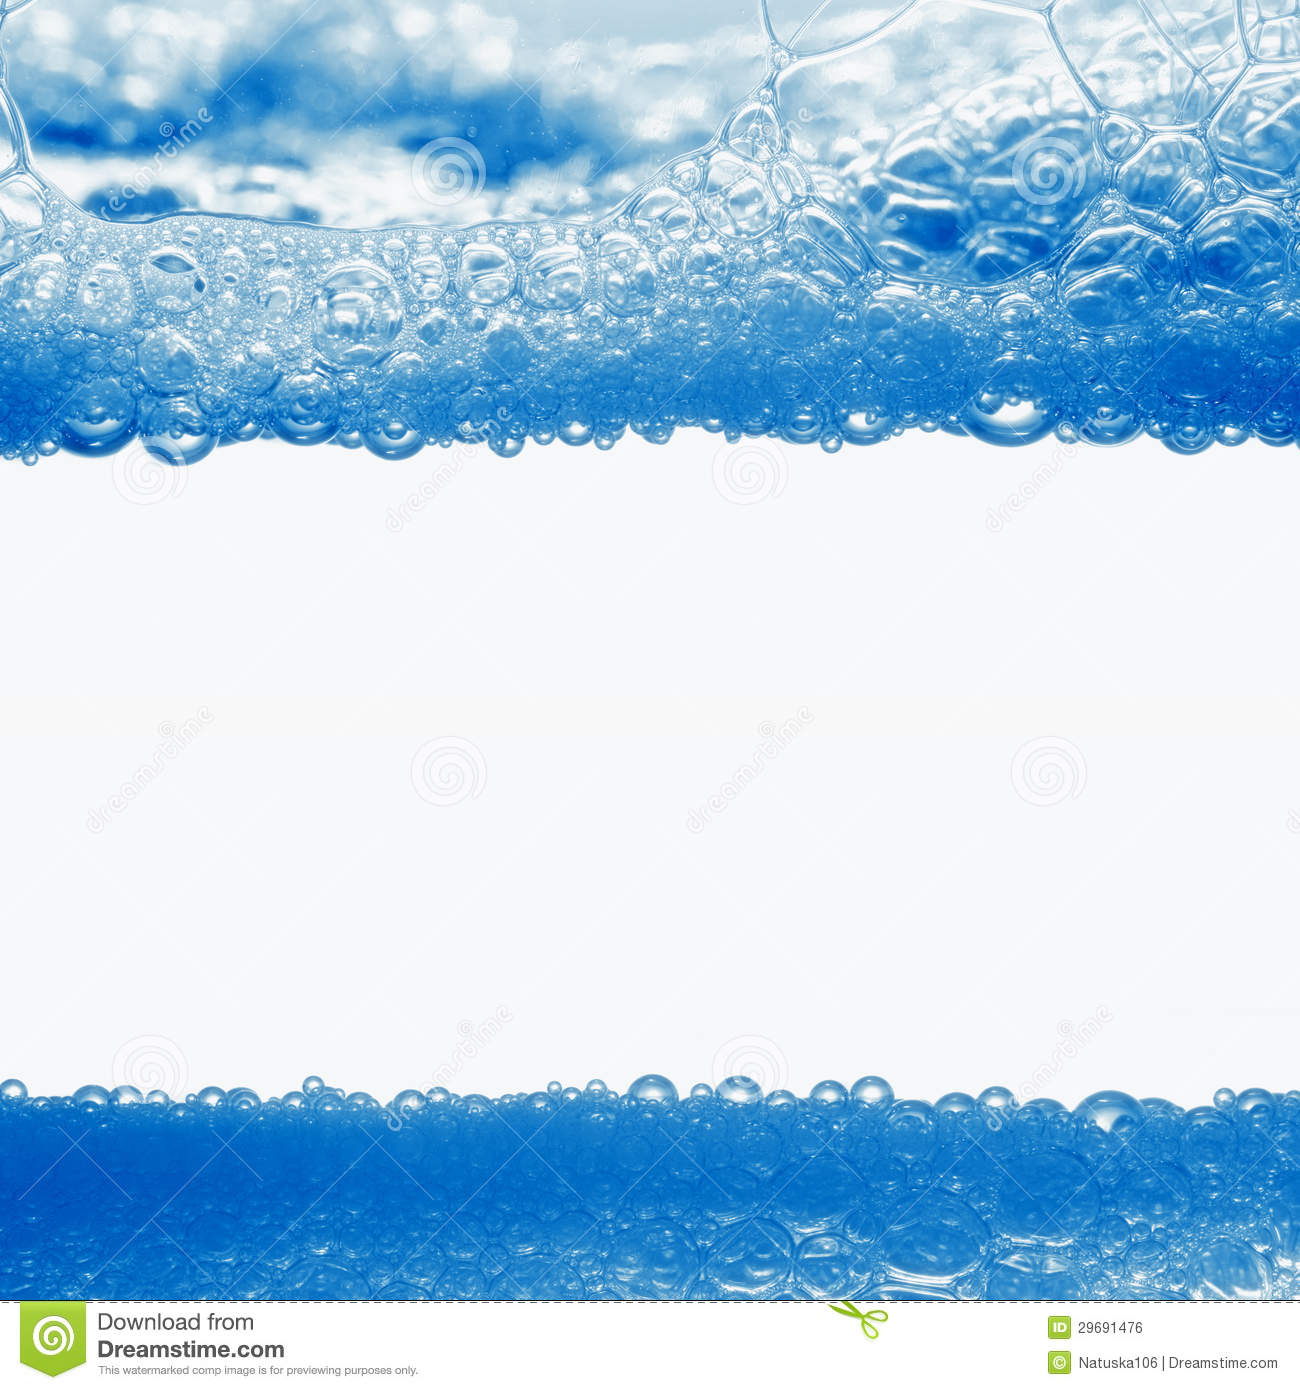 suds background download - photo #23